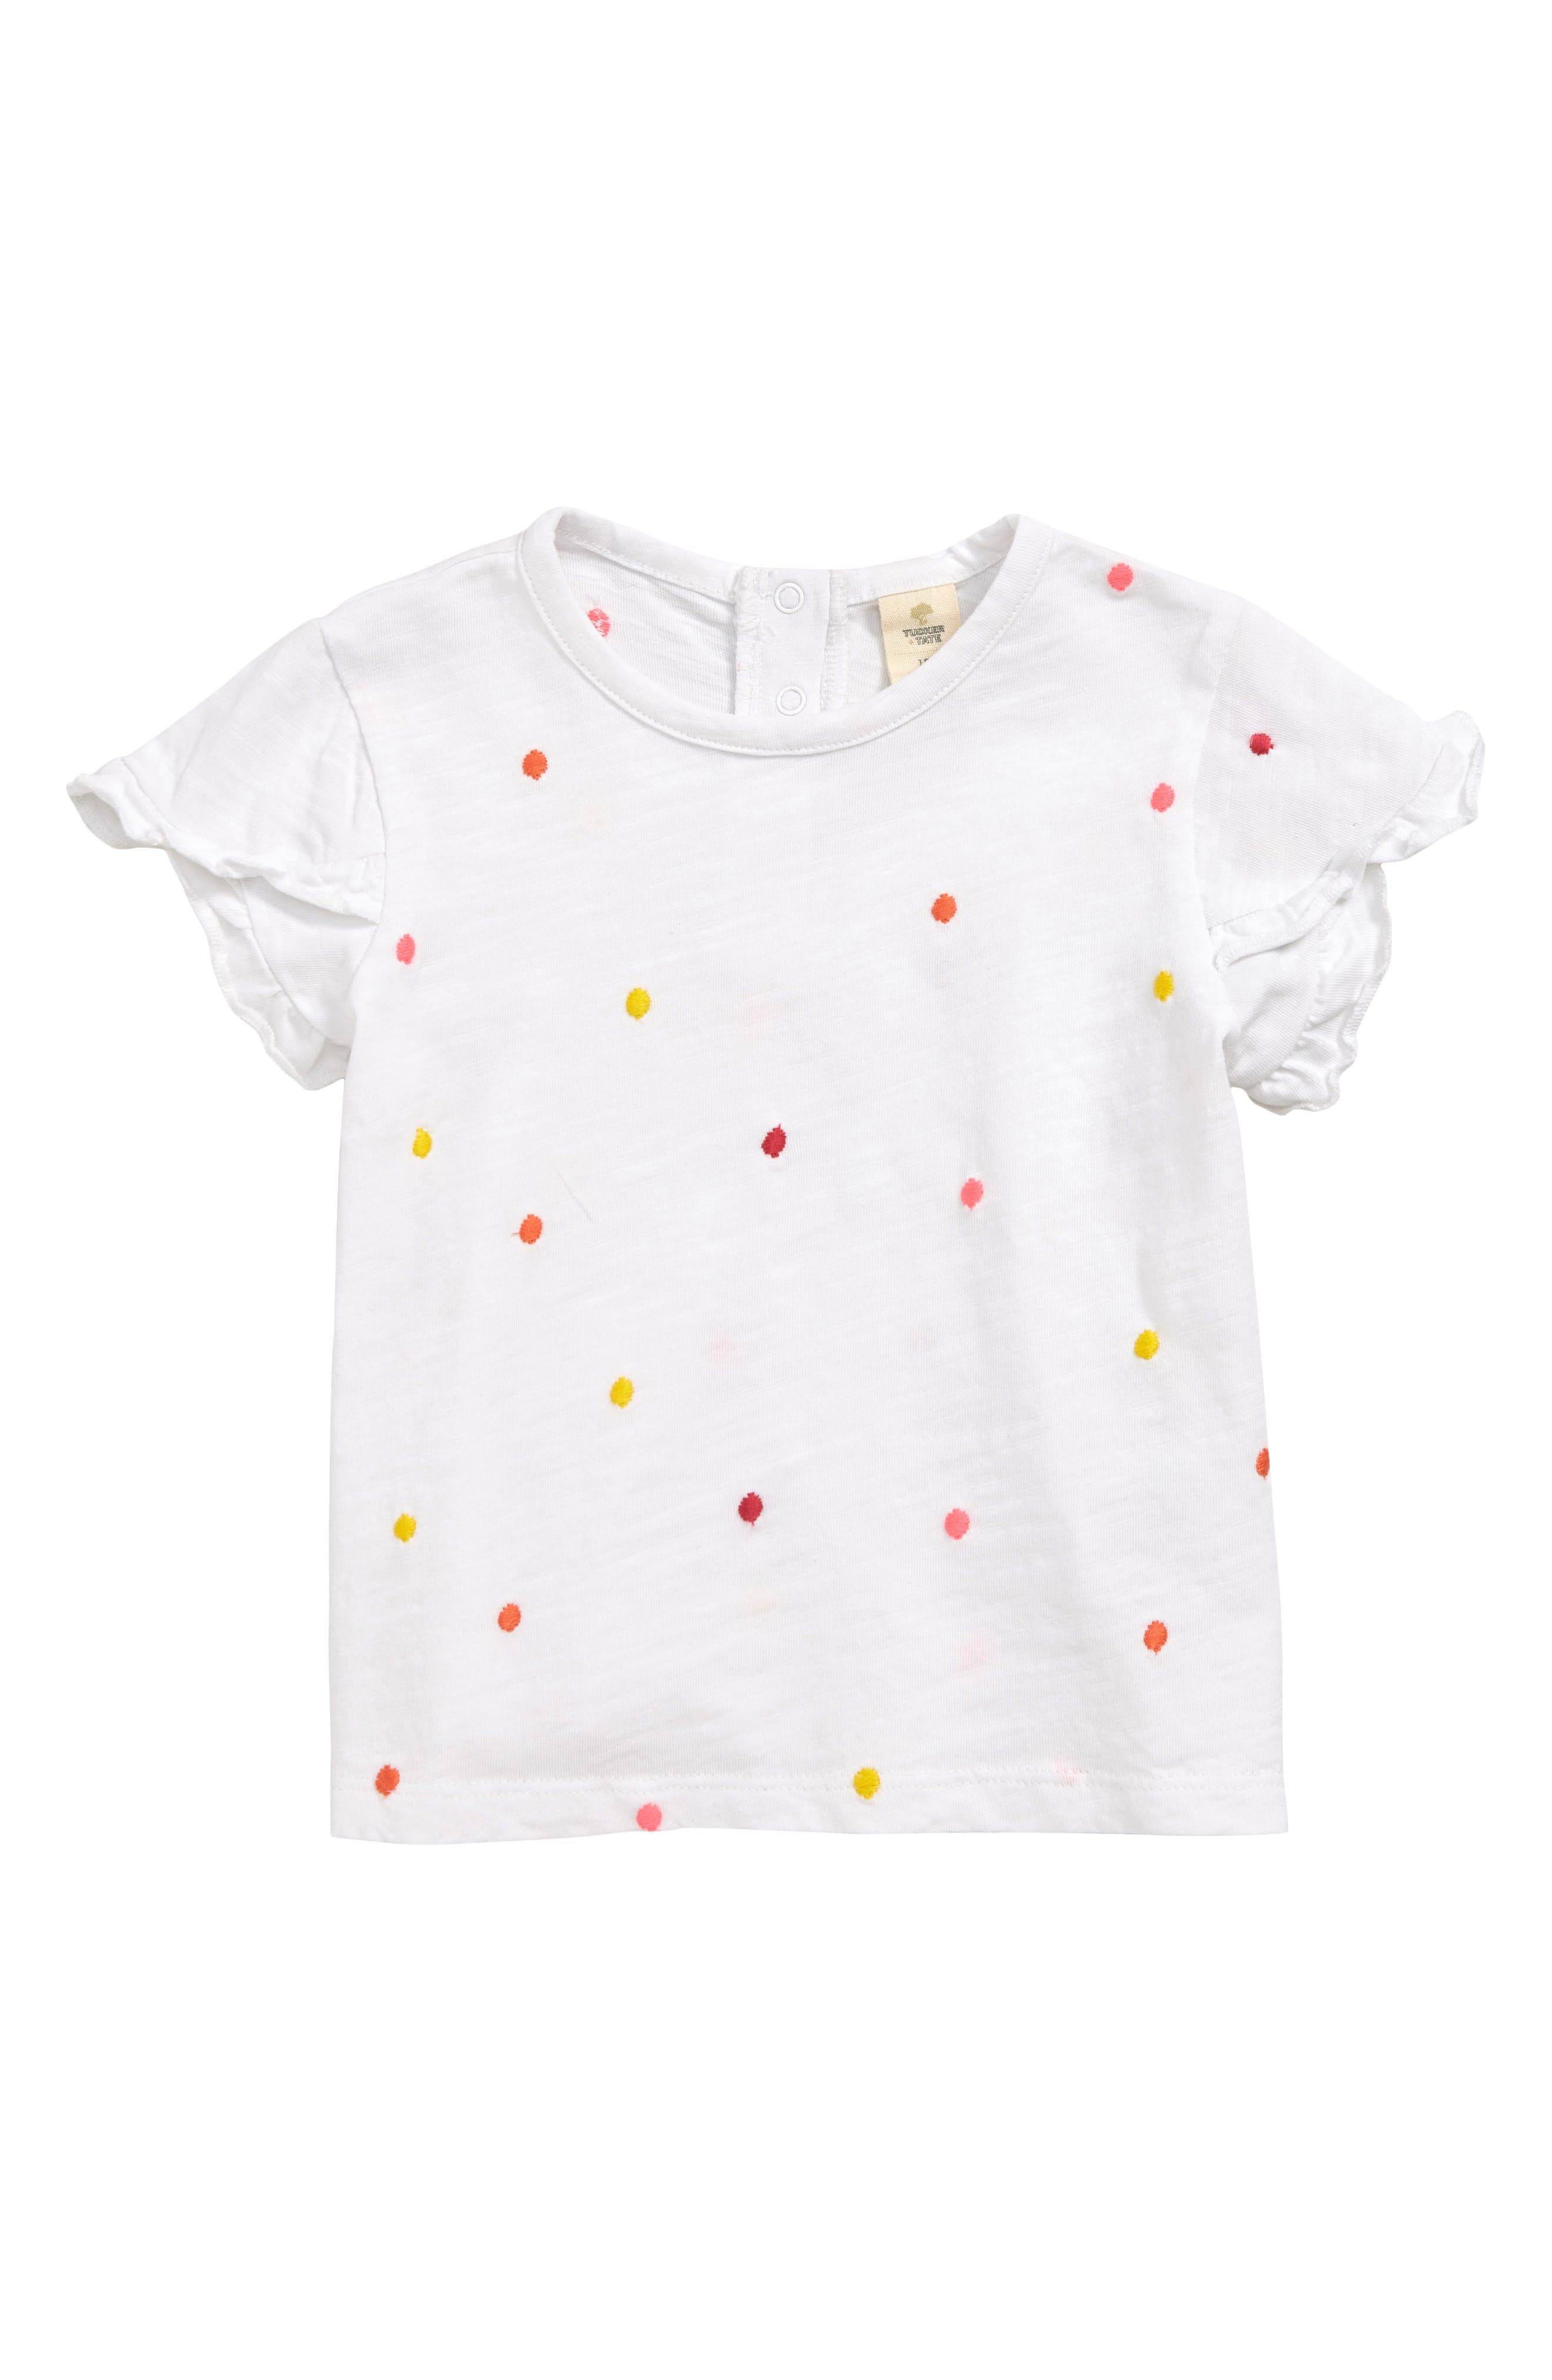 TUCKER + TATE, Embroidered Dot T-Shirt, Main thumbnail 1, color, WHITE